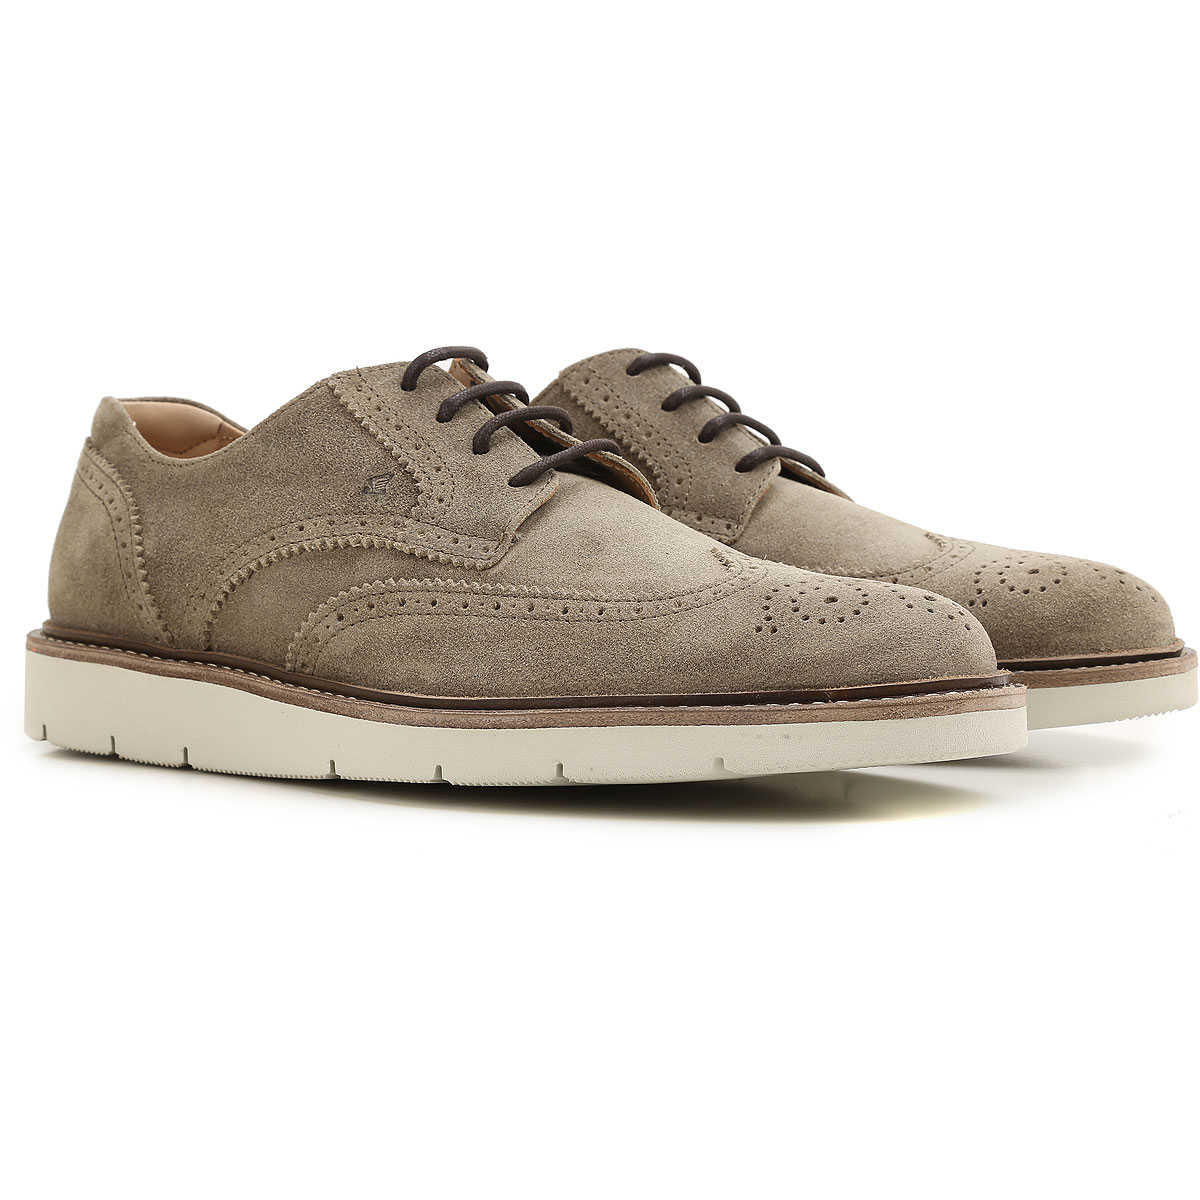 Hogan Brogue Shoes On Sale in Outlet